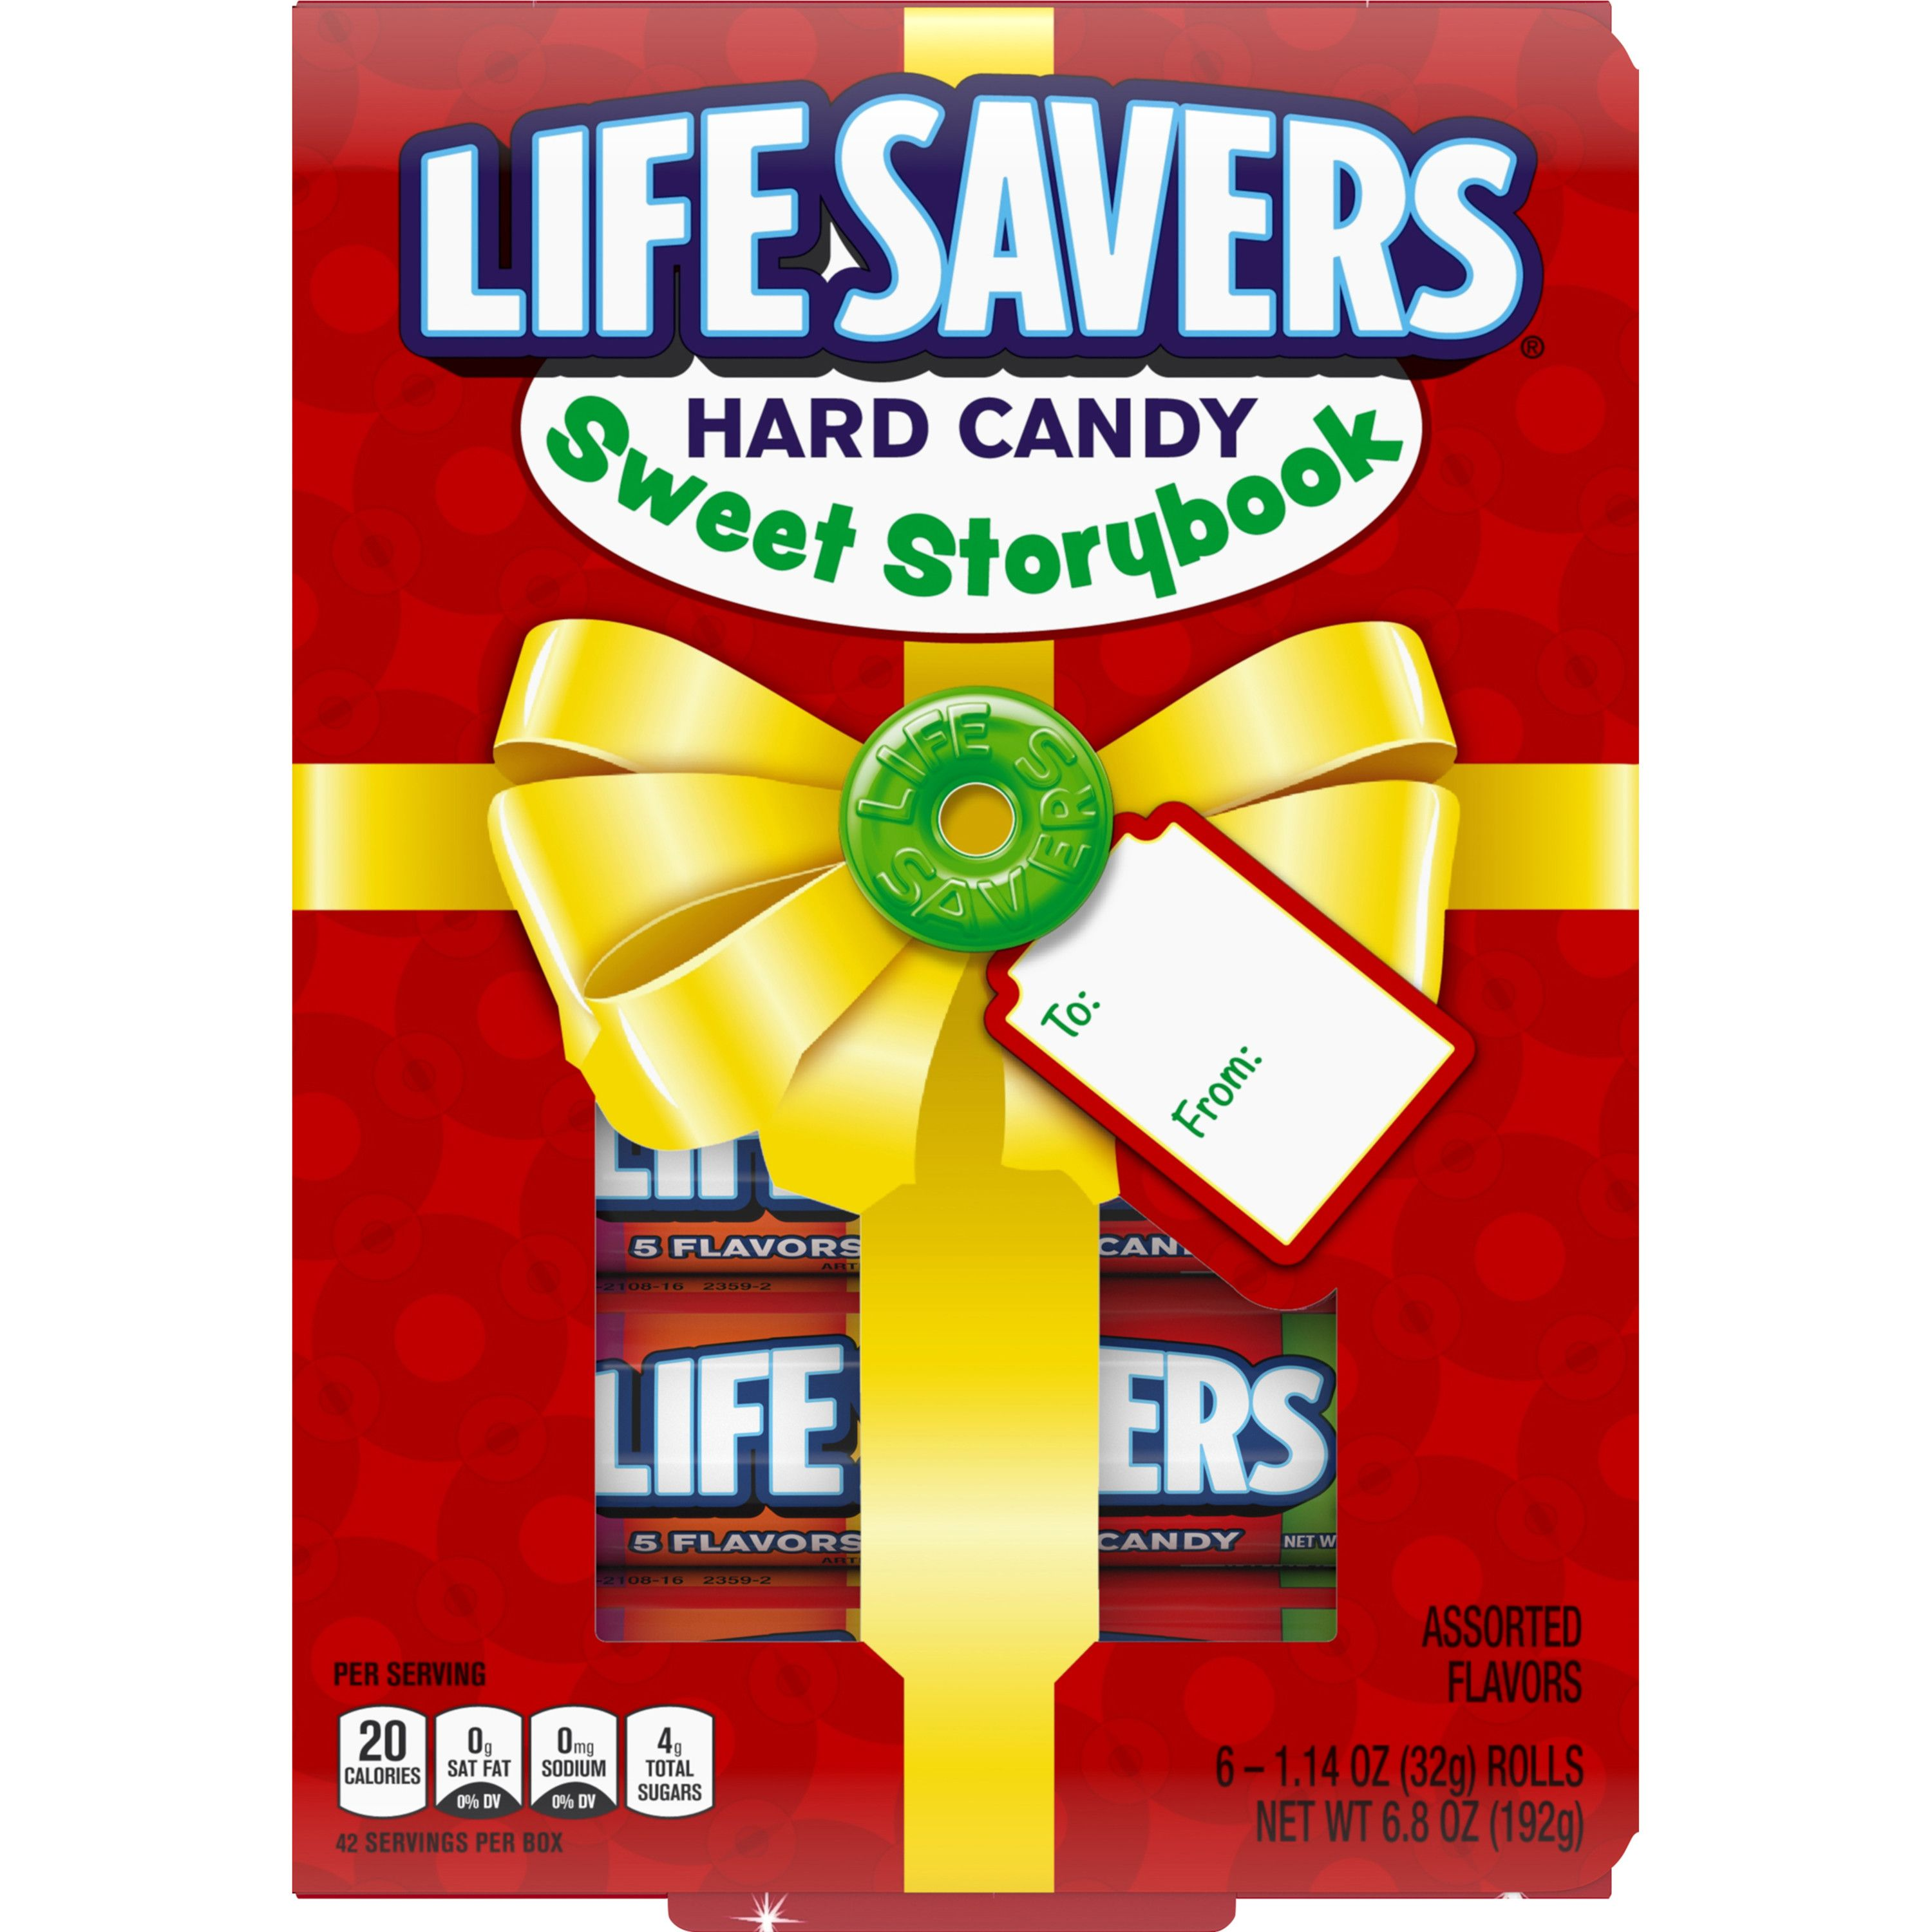 Life Savers 5 Flavors Hard Candy Sweet Storybook Holiday Candy Christmas Storybook 6 Rolls Walmart Com Holiday Candy Christmas Candy Hard Candy